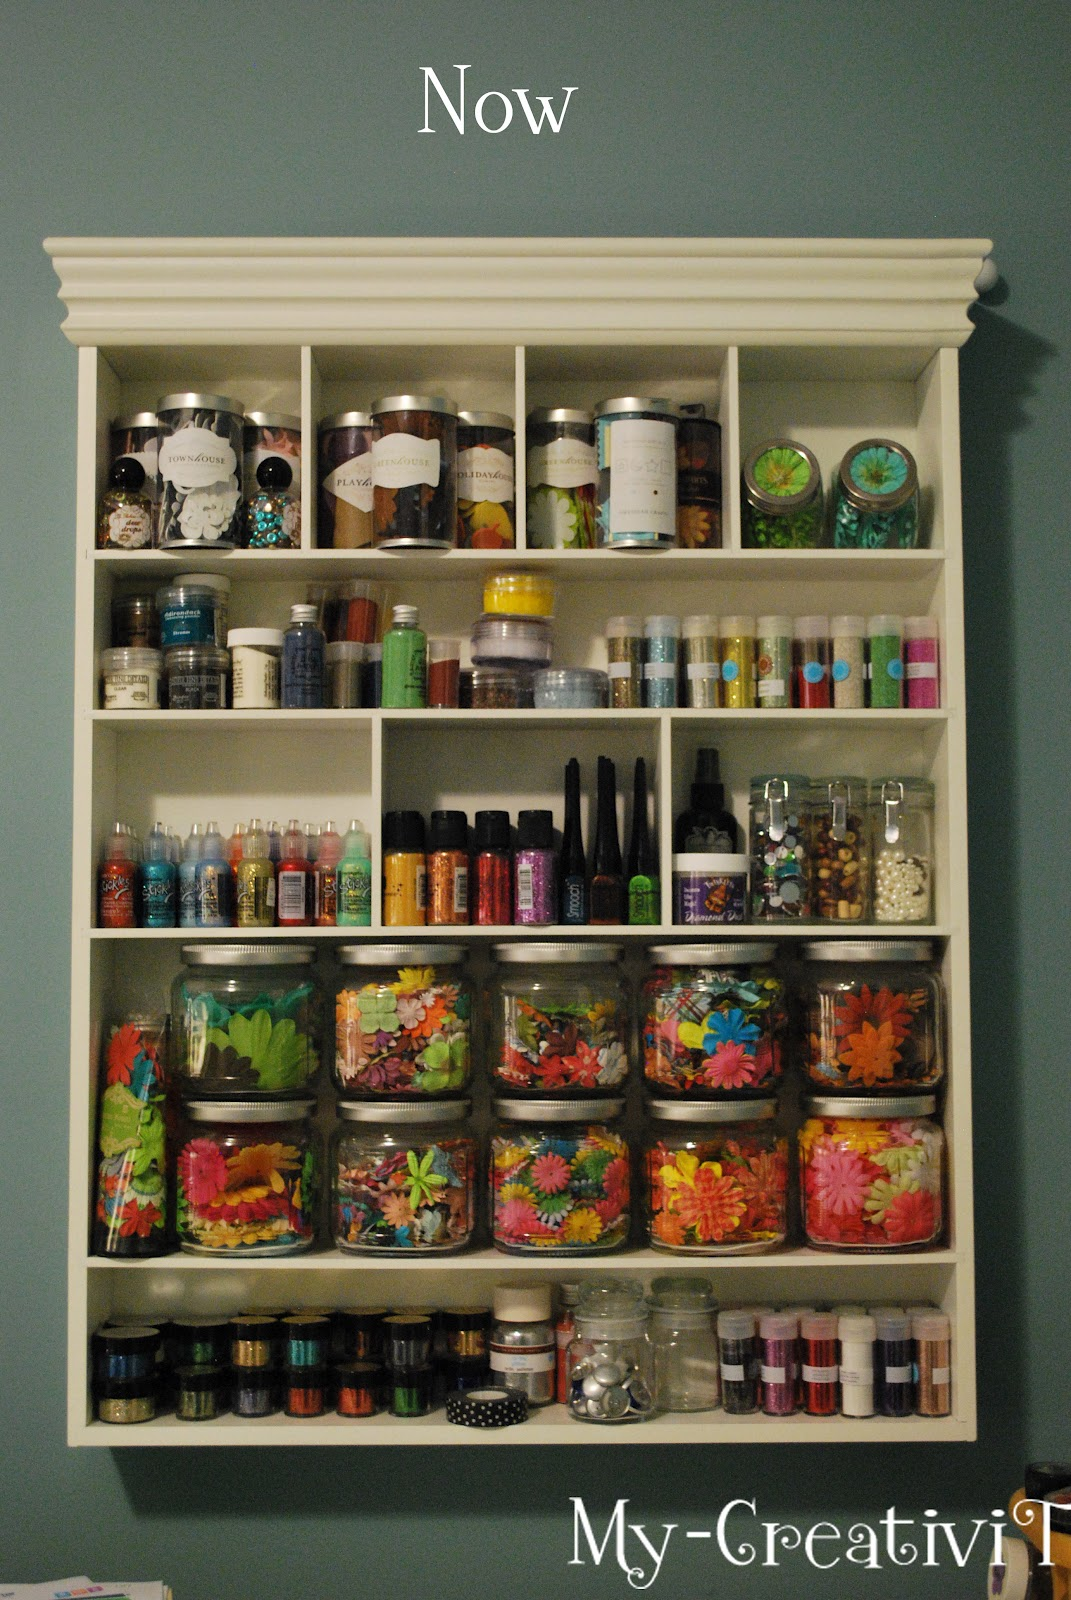 My Creativit Craft Room Post 2 Getting Organized